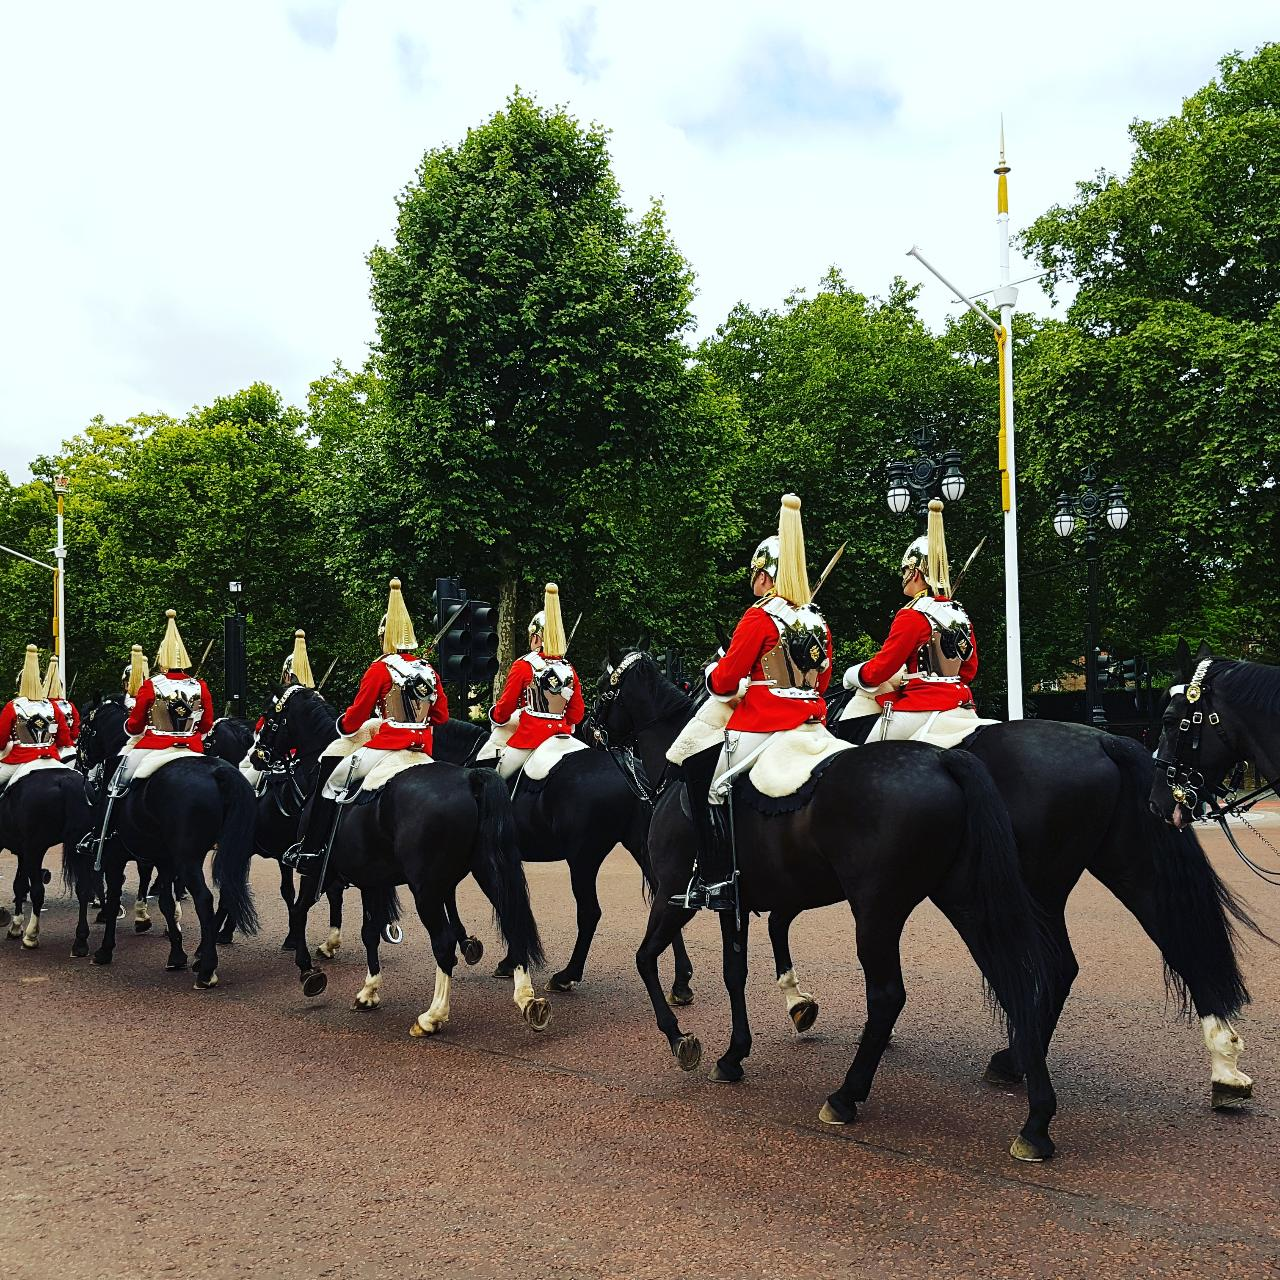 British Royalty Tour! See the Guard Change & More!